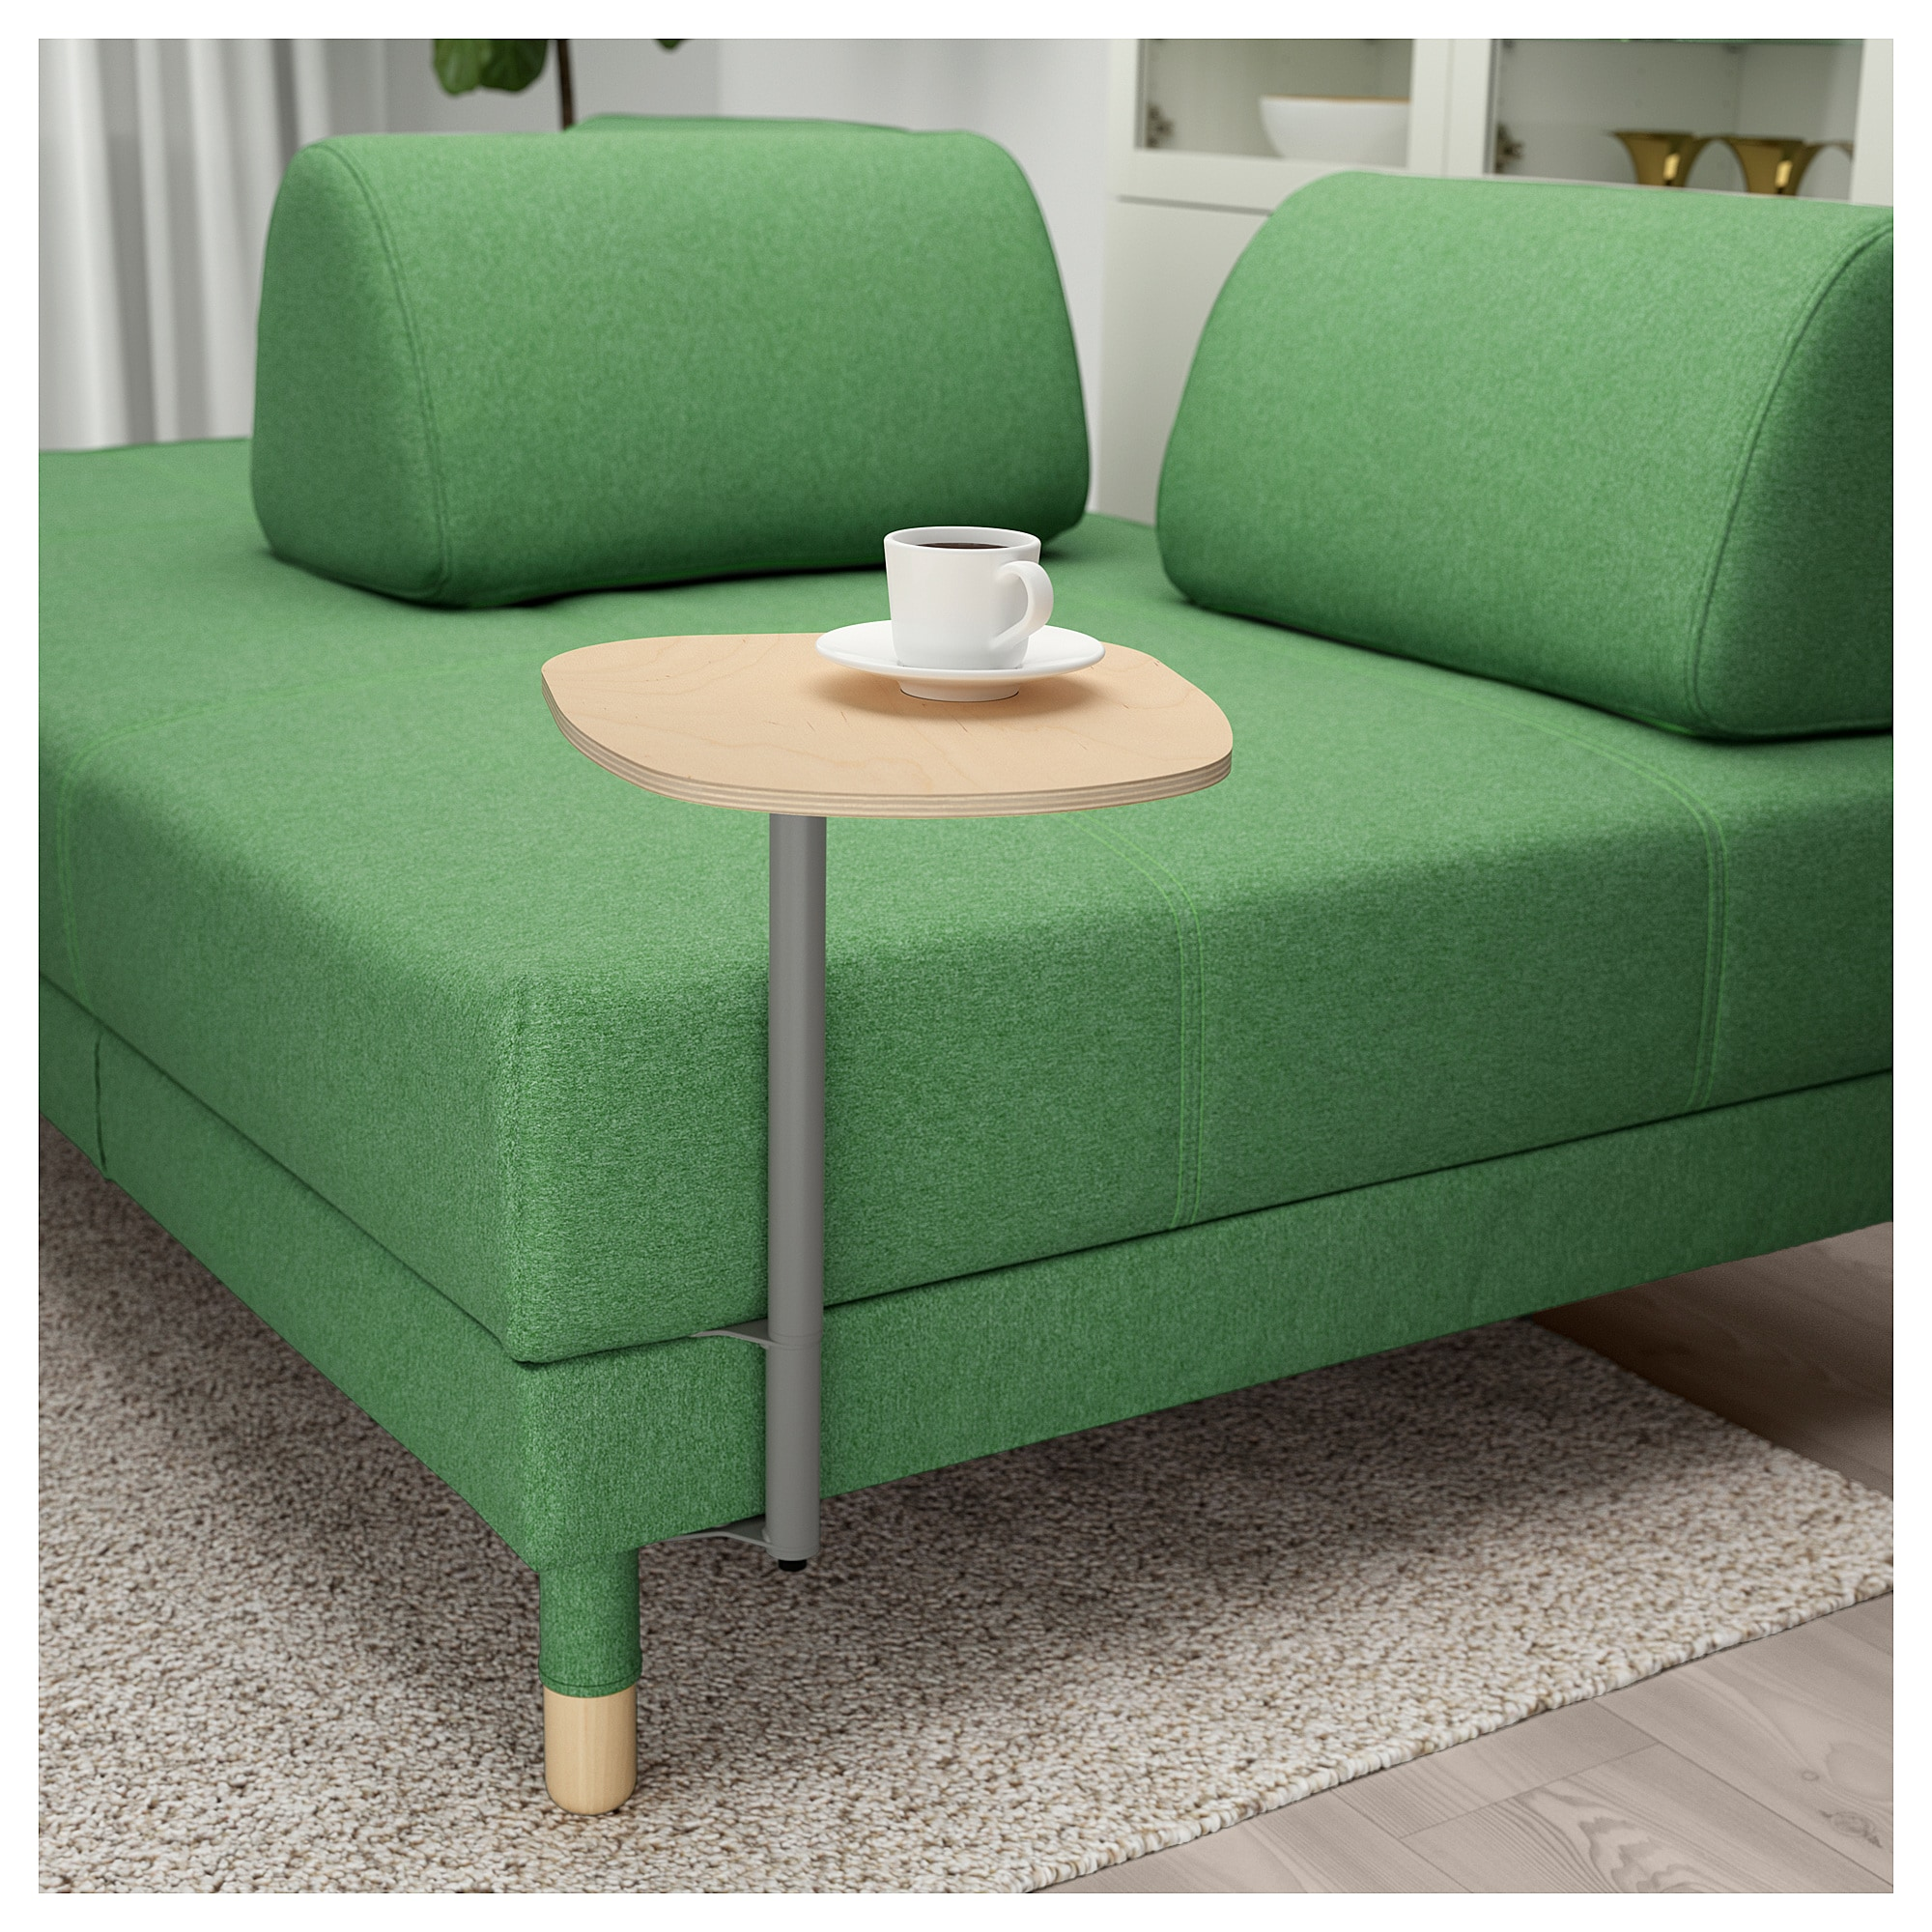 Focus On Furniture Sofa Bed Flottebo Sleeper Sofa With Side Table Lysed Green